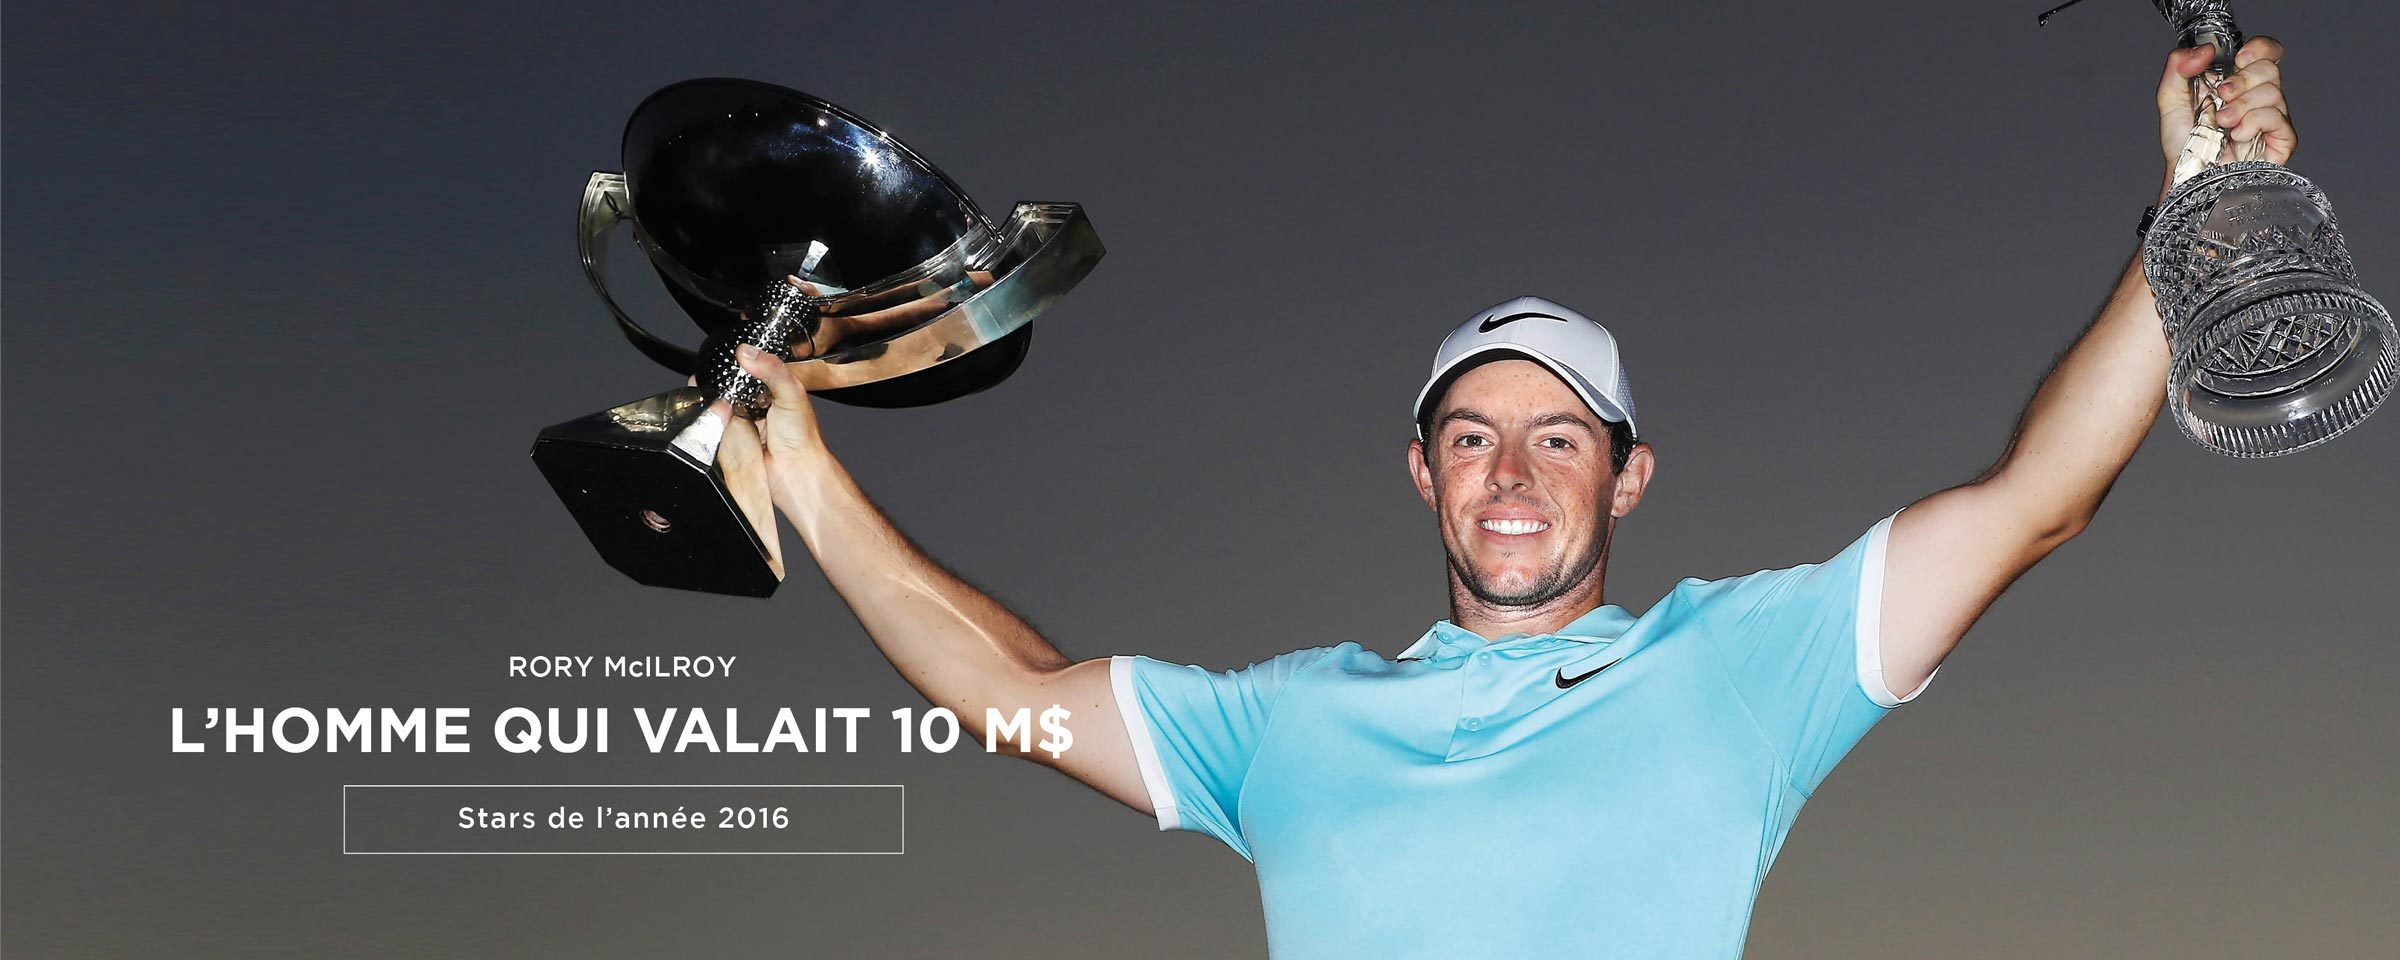 Rory McIlroy, L'homme qui valait 10 m$